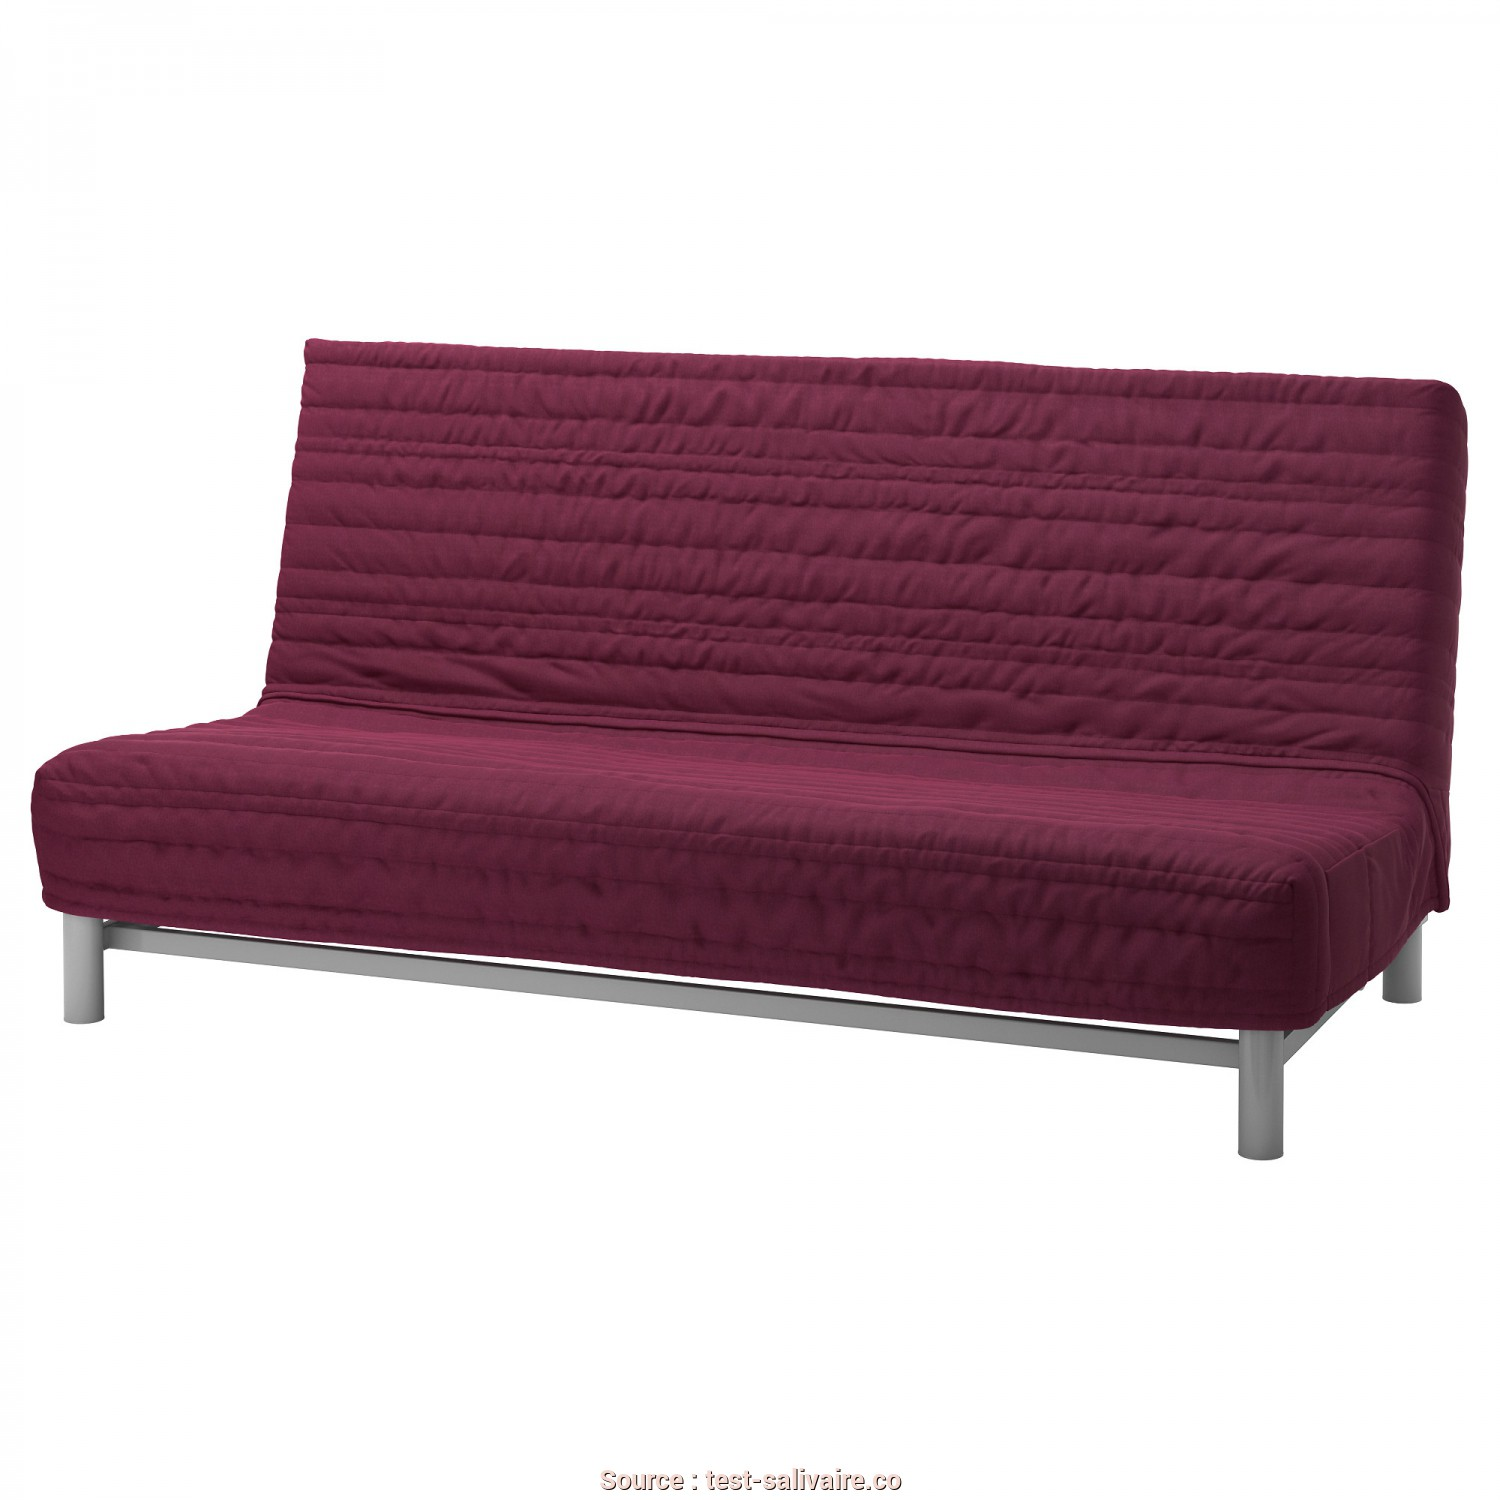 Vilasund Ikea Istruzioni, Bello Best Epic Loveseat Sleeper Sofa Ikea About Living Room Ikea Loveseat Sleeper Sofa Queen Manstad Solsta With Ikea Slaapbank Solsta